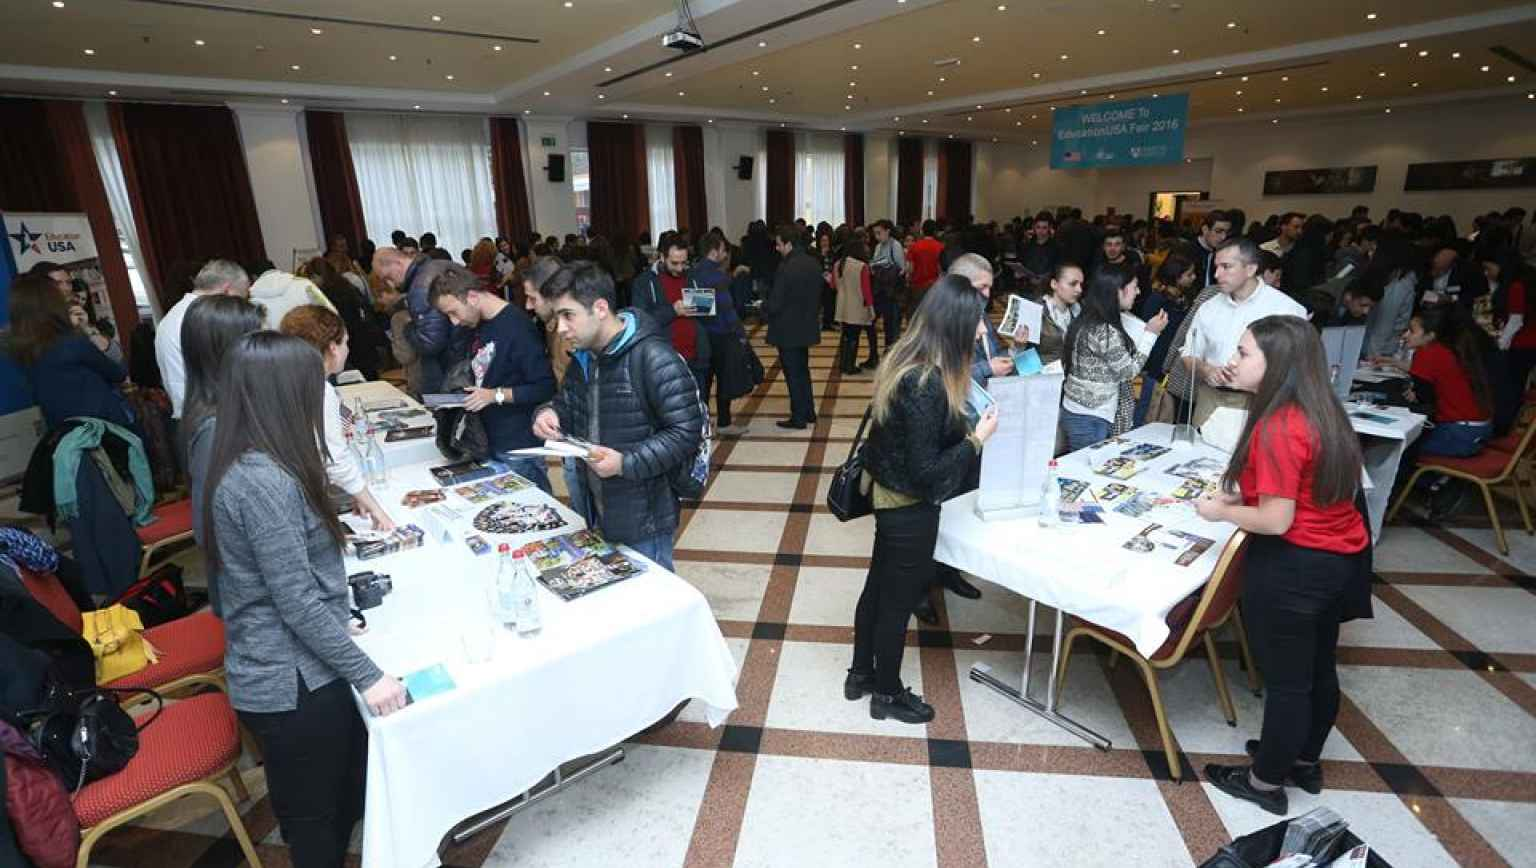 EducationUSA Fair 2016